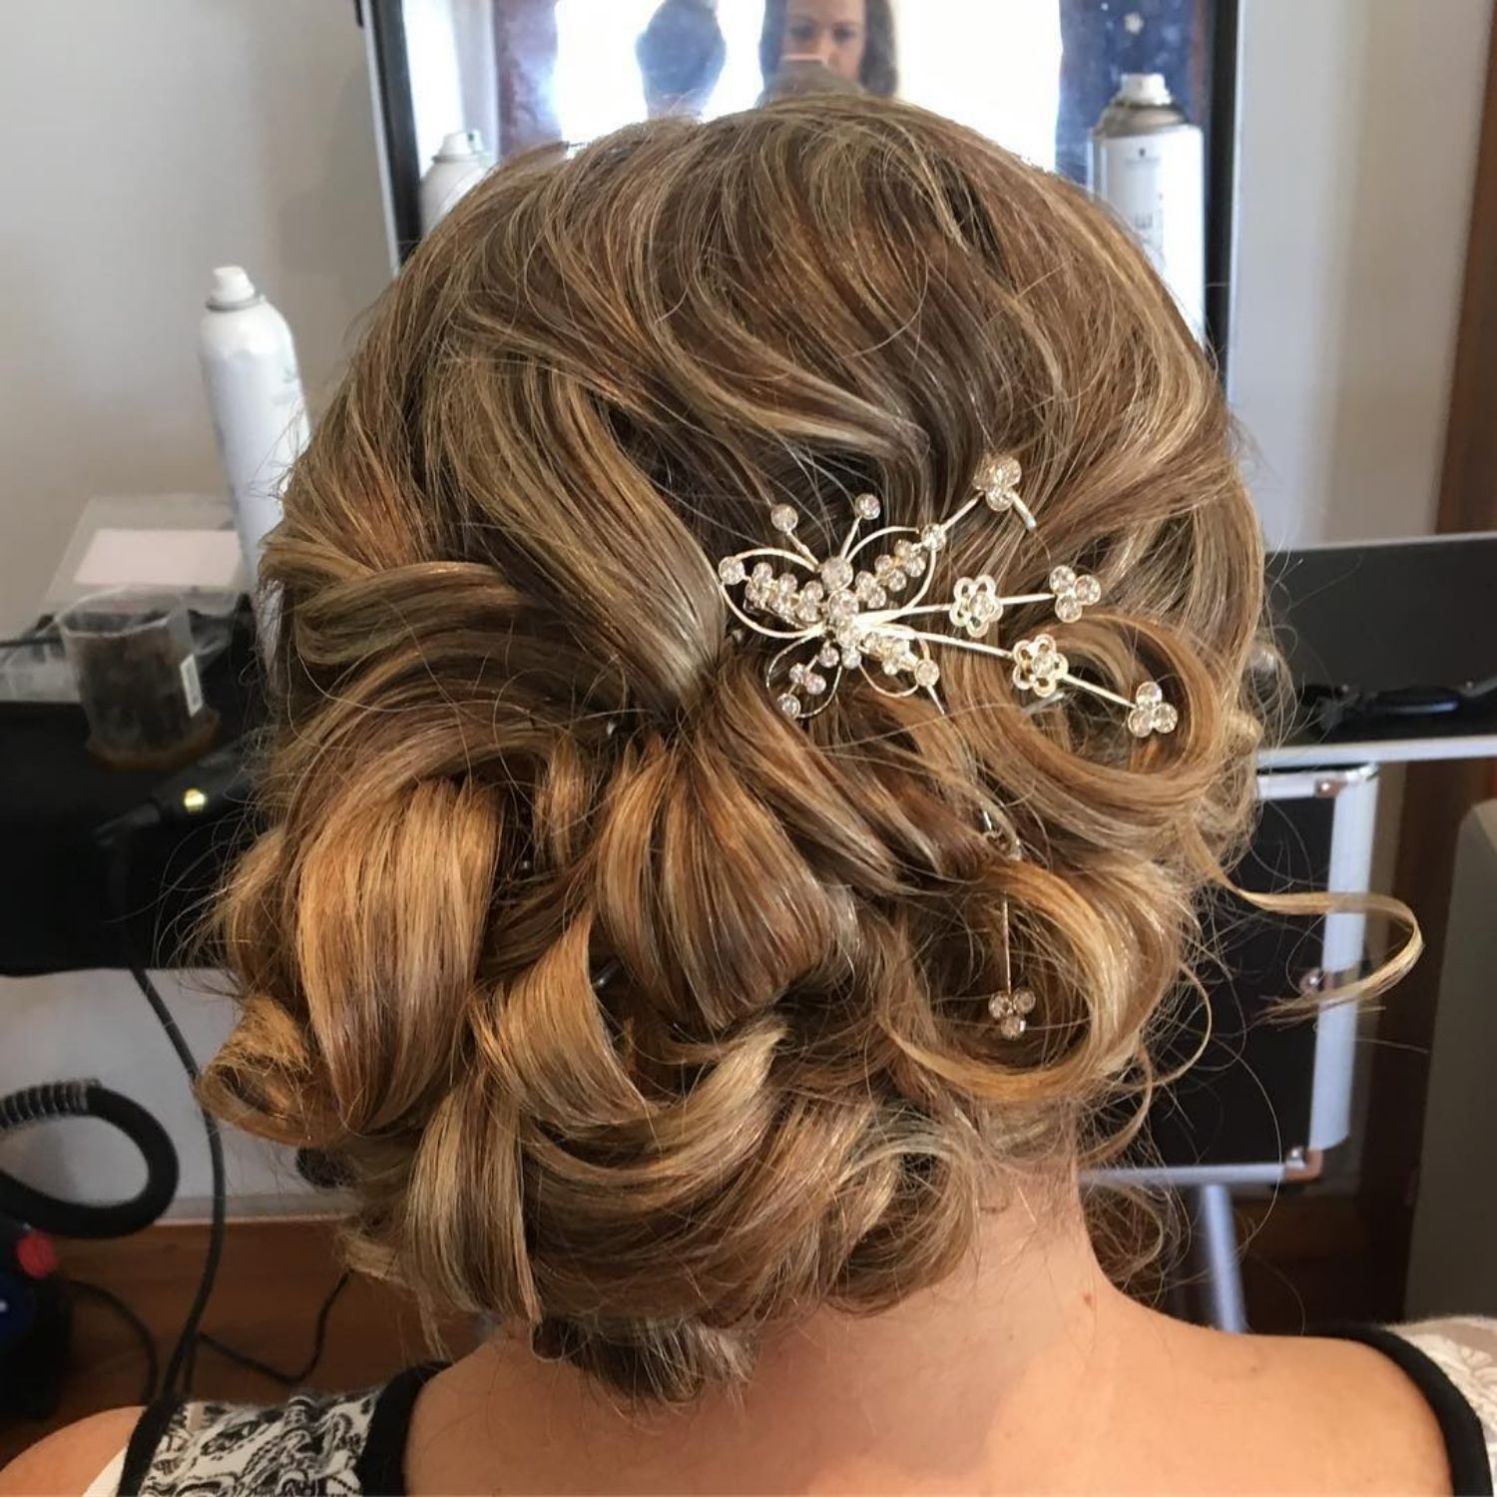 Ravishing Mother of the Bride Hairstyles in Maeghan